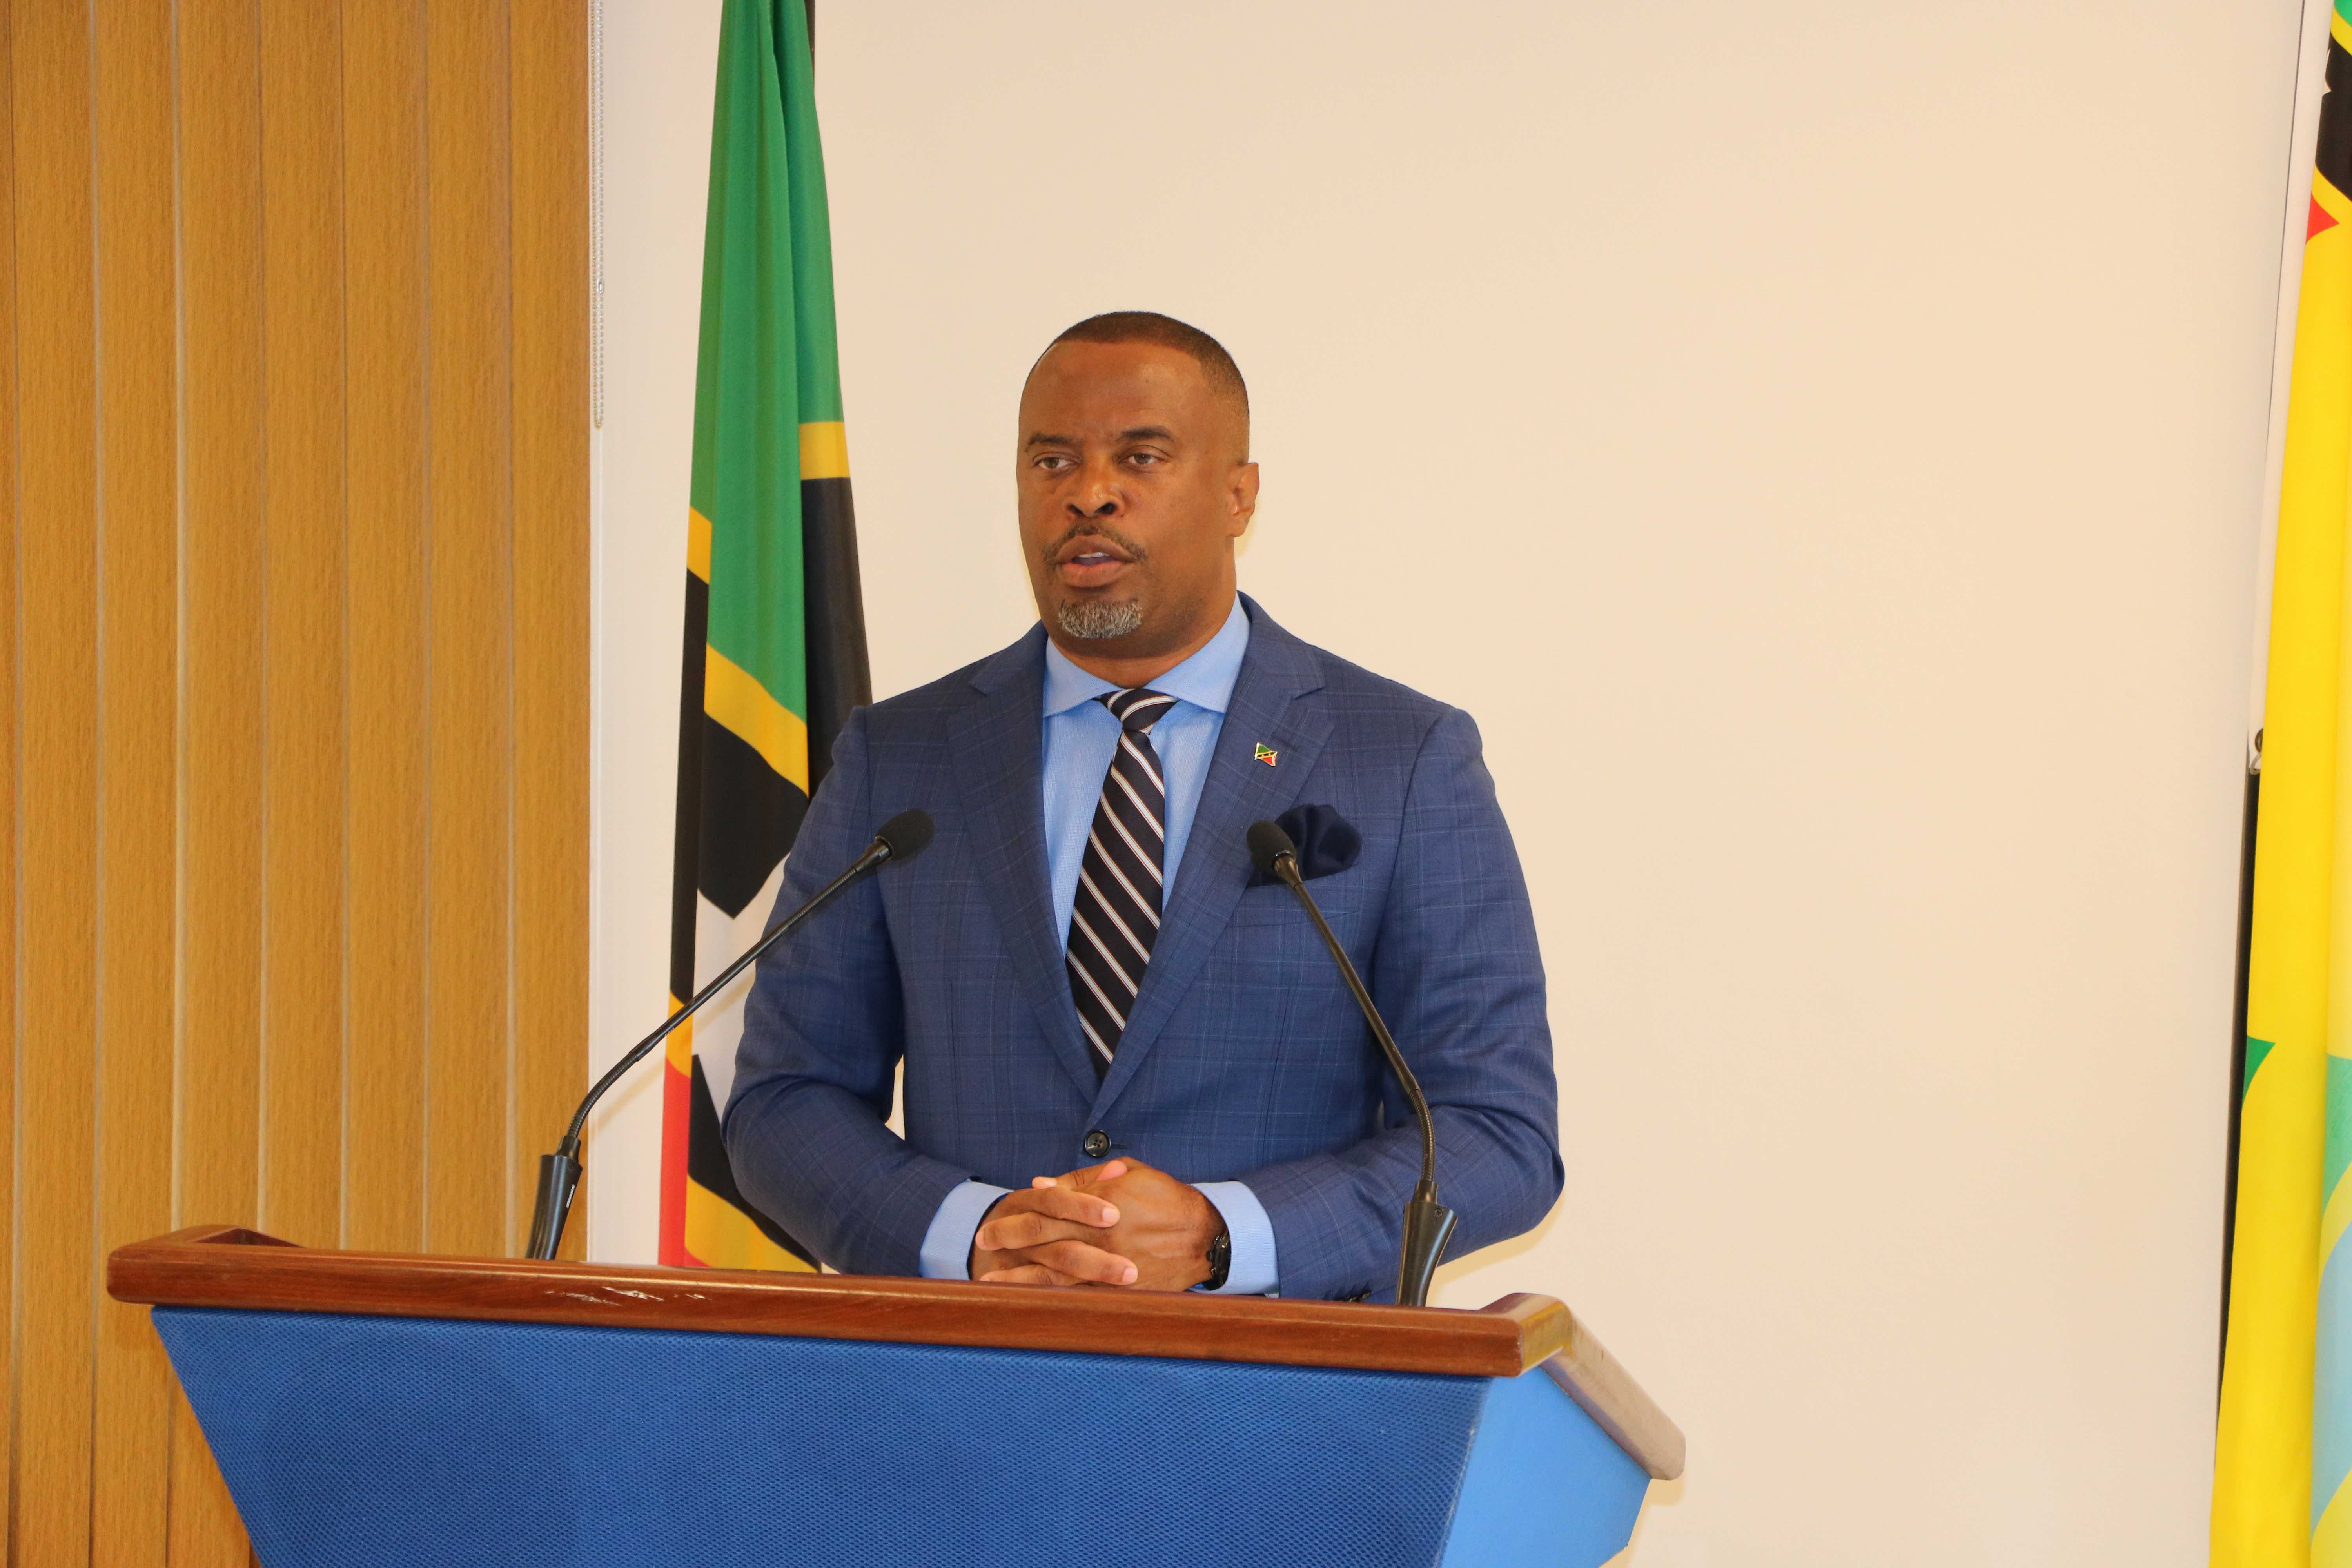 Hon. Mark Brantley, Premier of Nevis and Minister of Tourism in the Nevis Island Administration